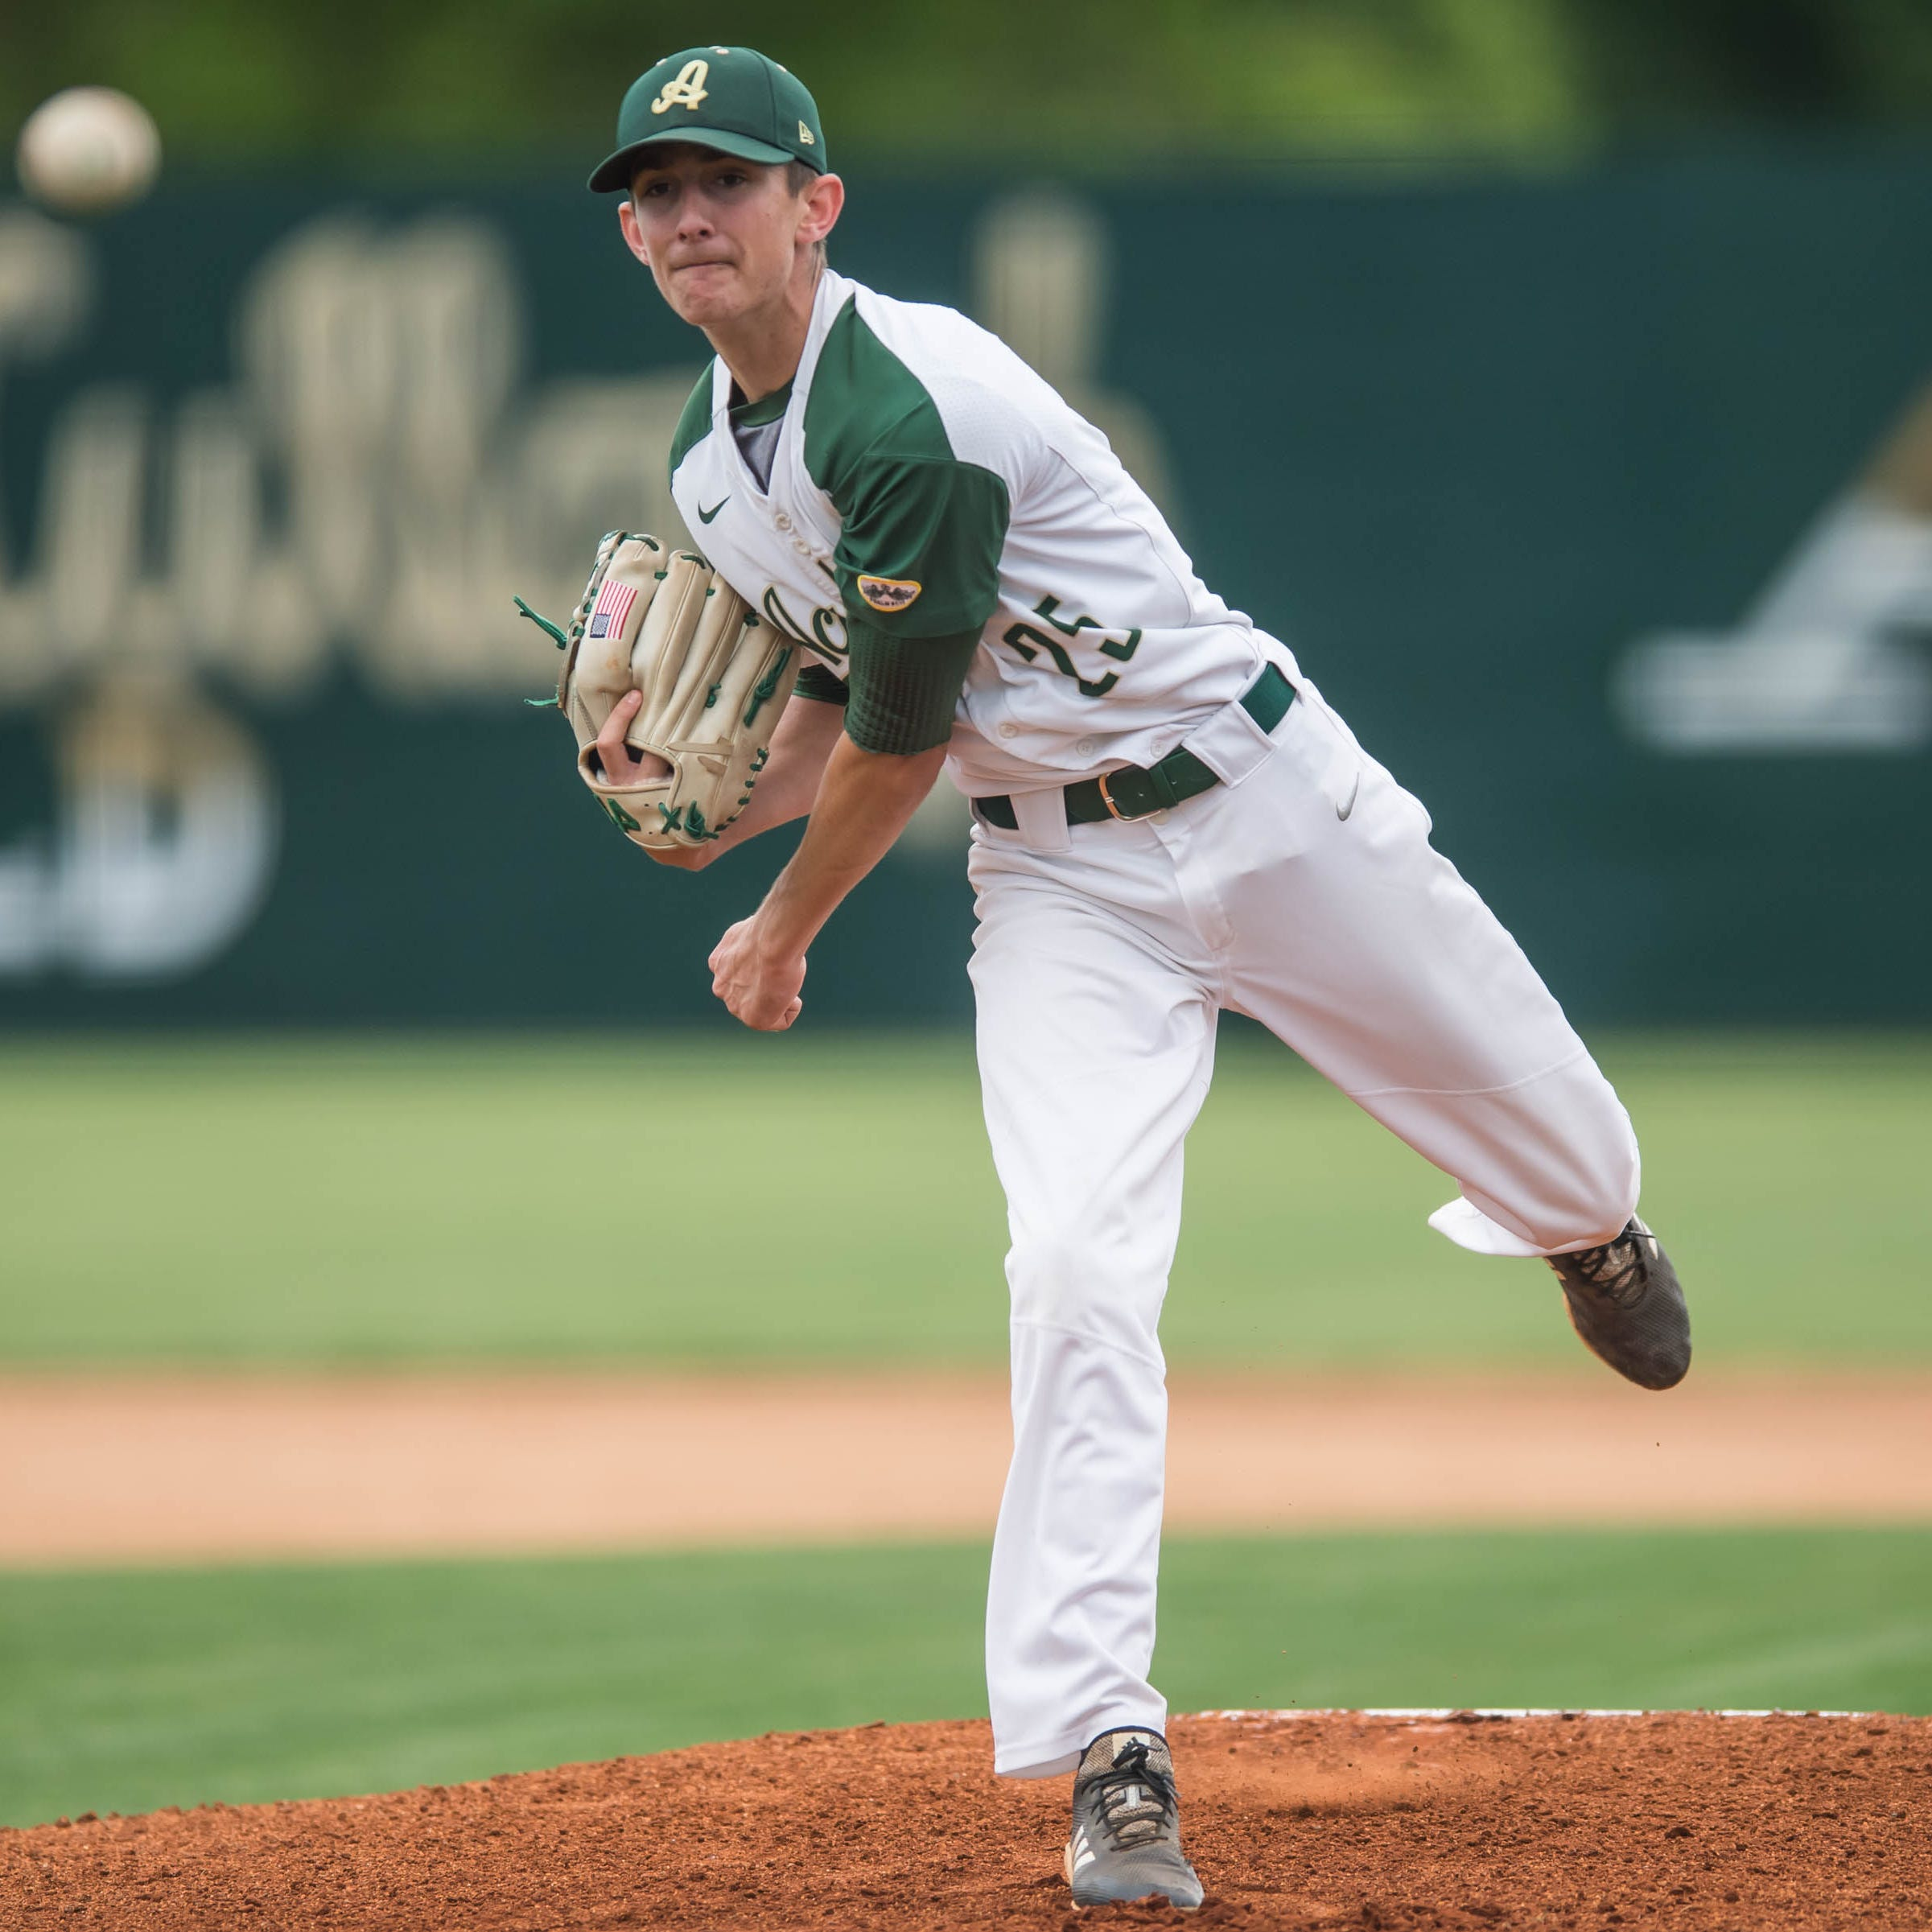 Trahan's dominant performance leads Acadiana to second round